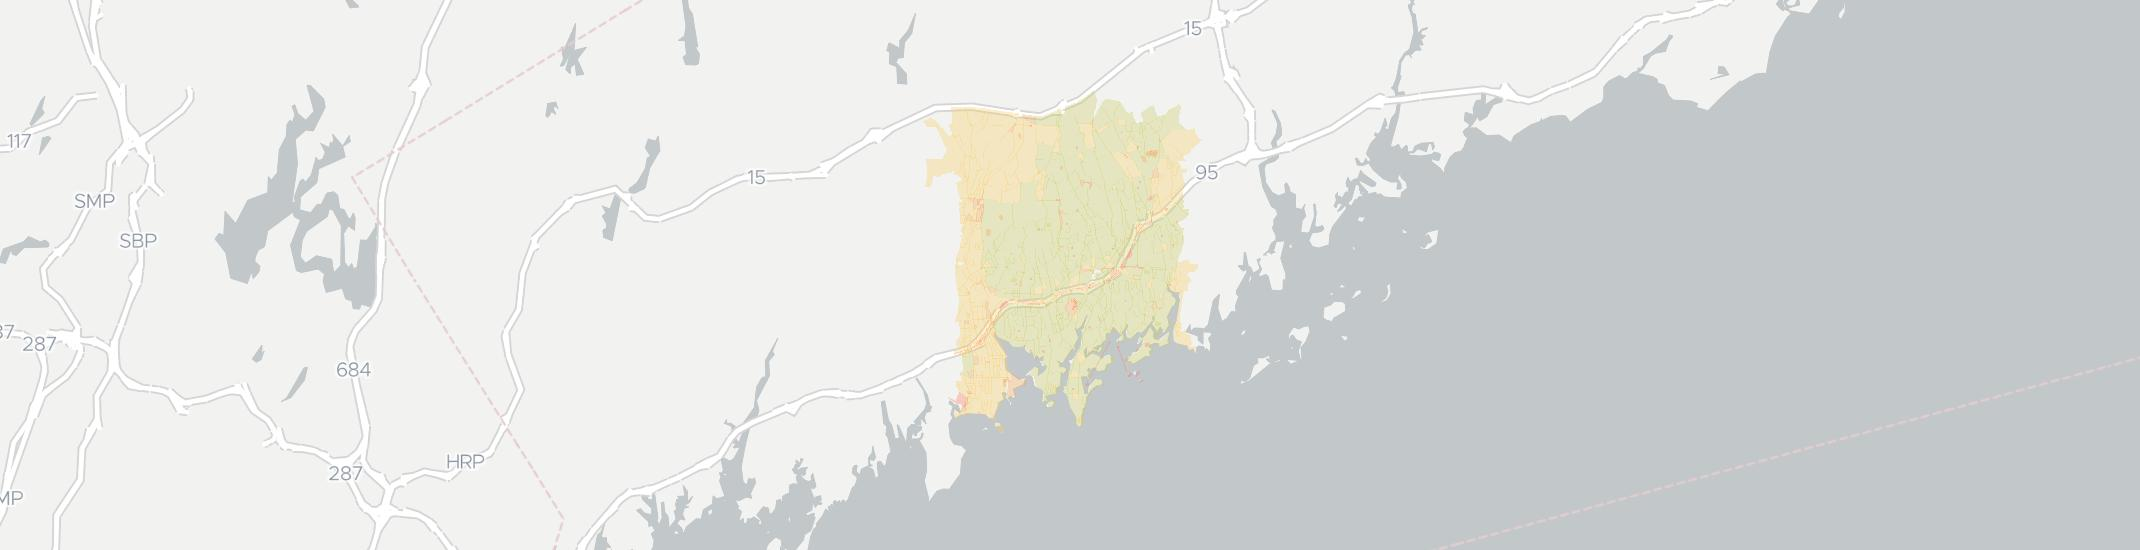 Darien Internet Competition Map. Click for interactive map.